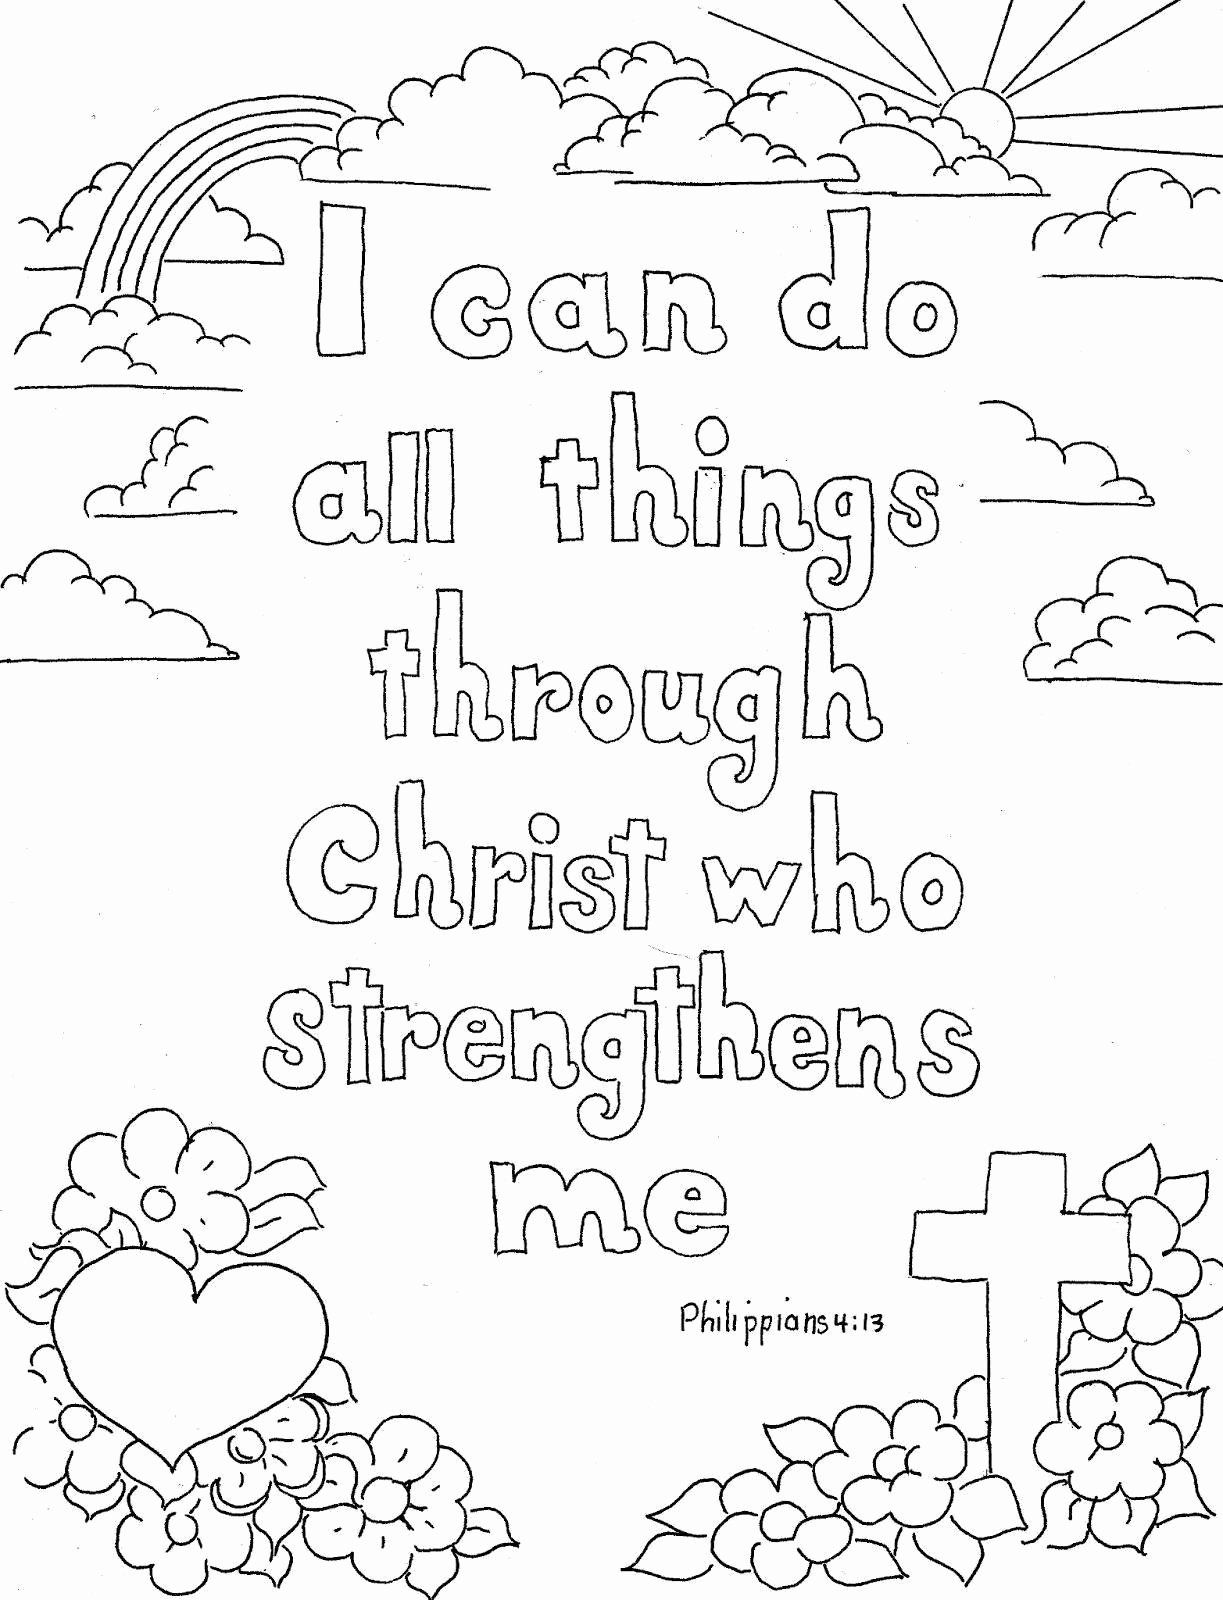 Coloring Pad For Kids New Basic Drawings For Kids Beautiful 24 Fresh Children Coloring In 2020 Bible Verse Coloring Page Bible Coloring Pages Christian Coloring